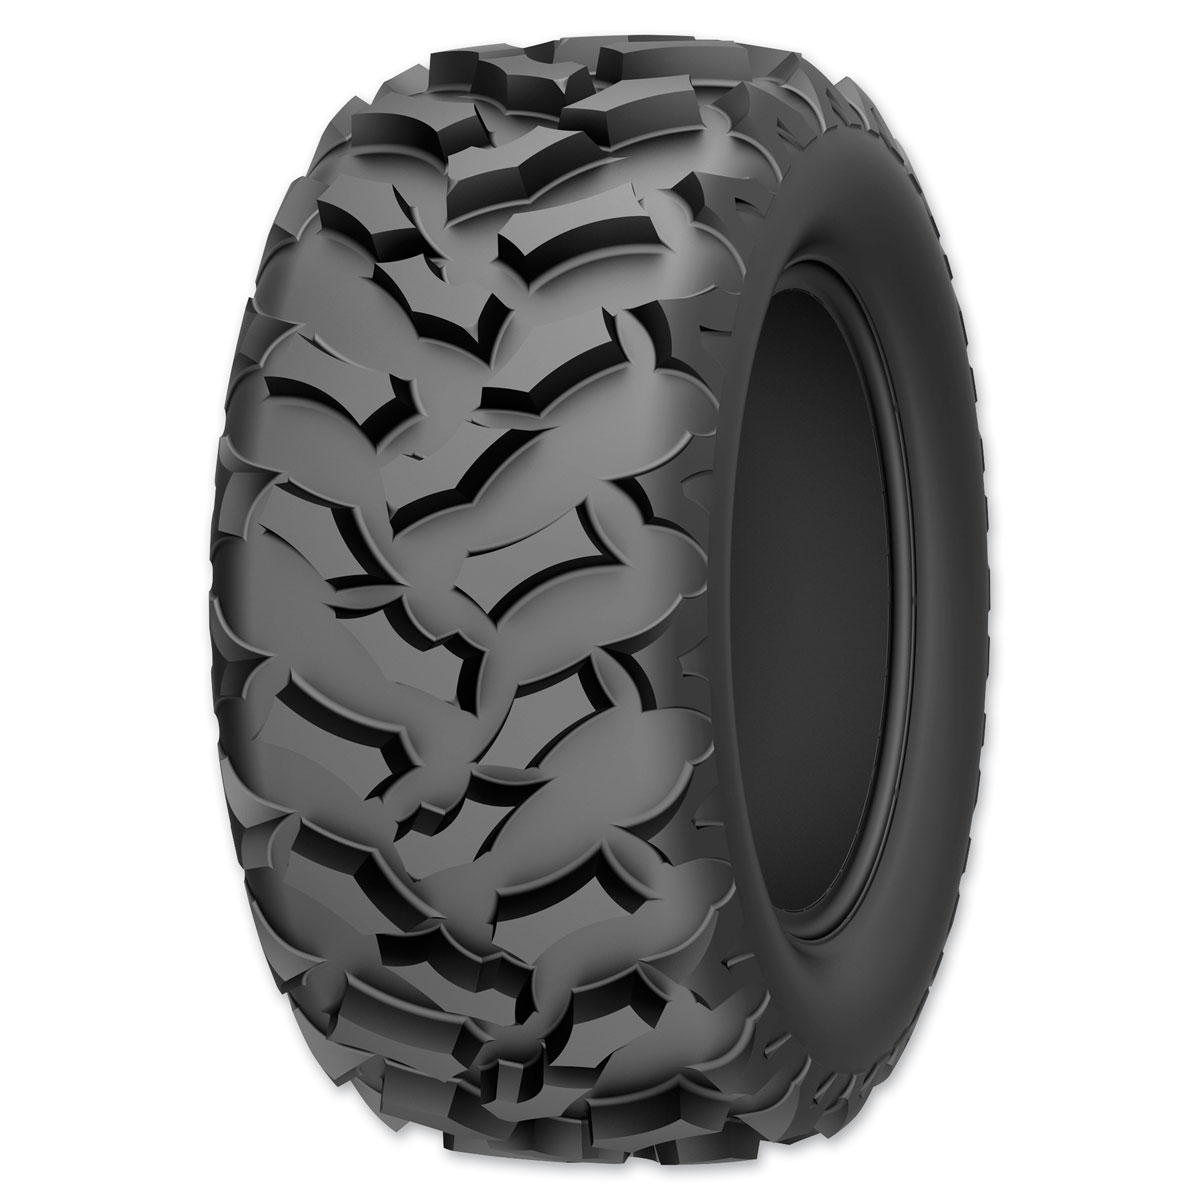 Kenda Tires Mastodon 26X11R-14 Front/Rear Tire